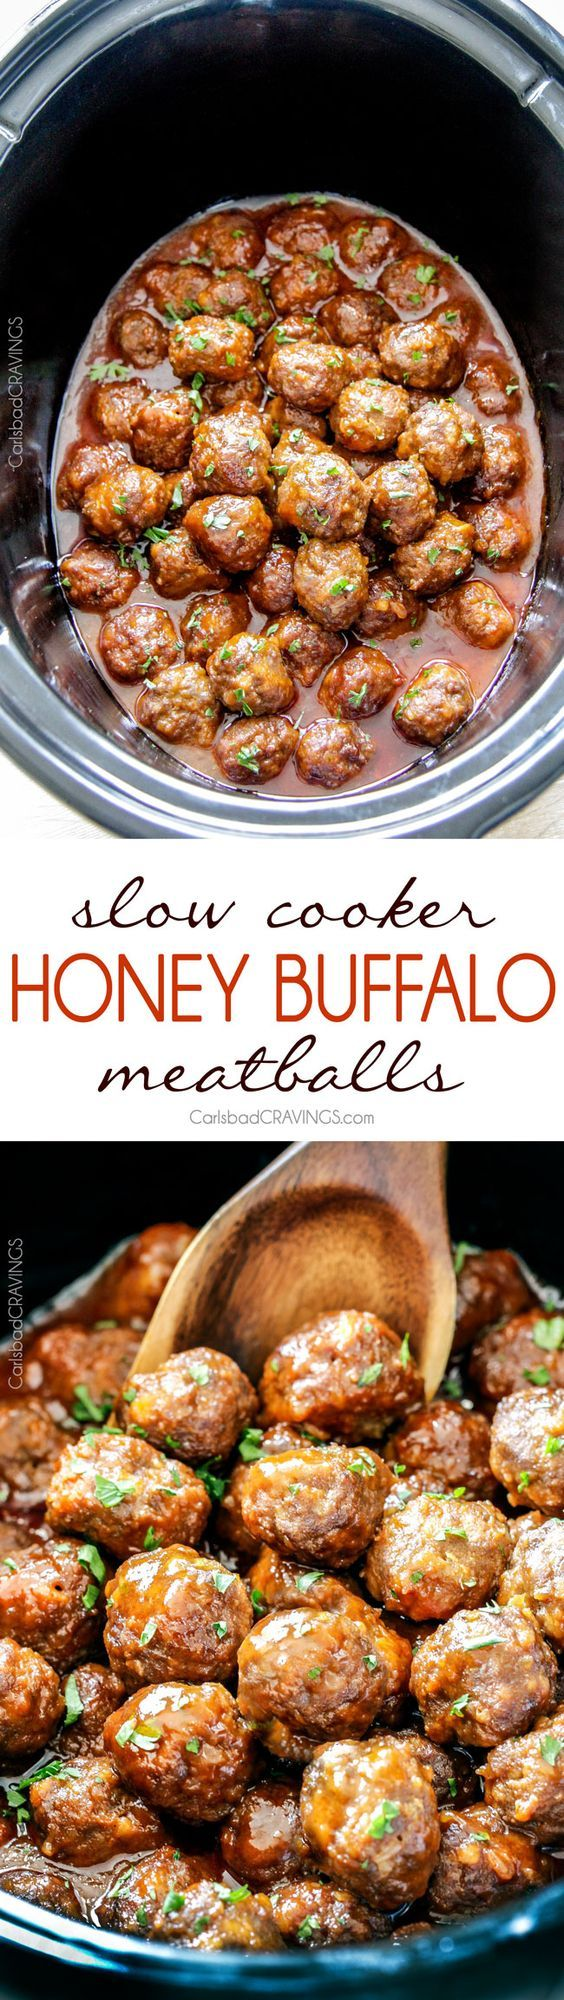 Slow Cooker Honey Buffalo Meatballs Recipe plus 49 of the most pinned crock pot recipes